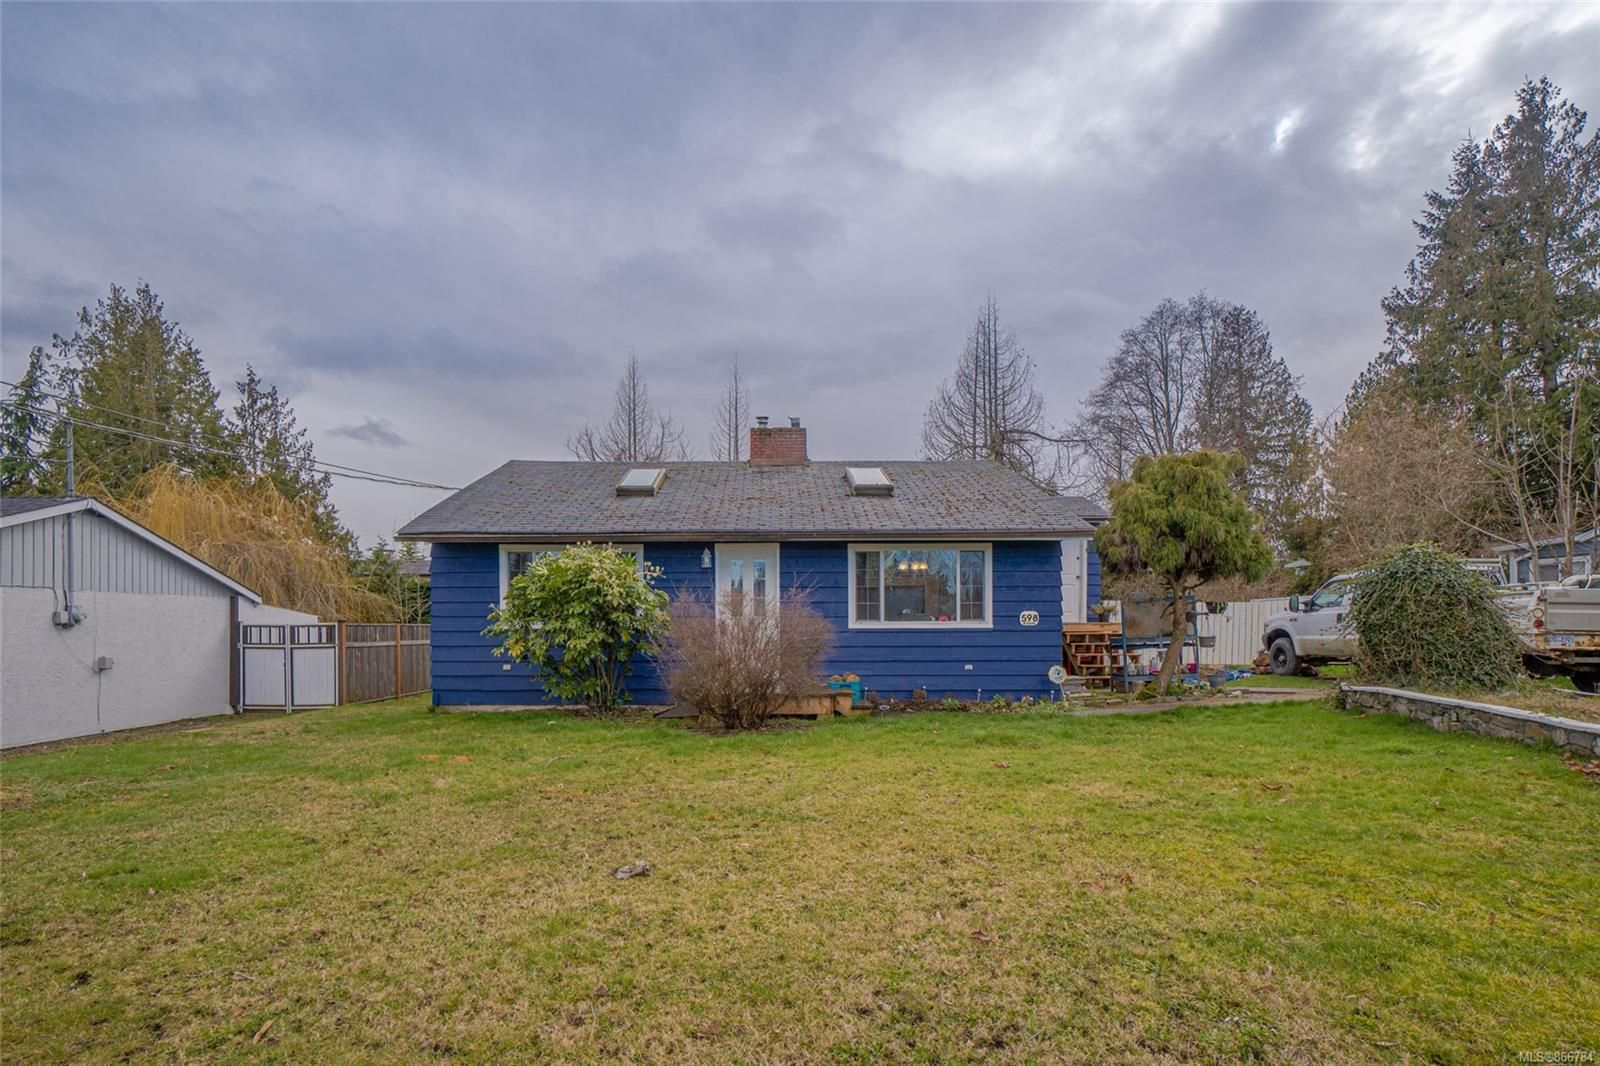 Main Photo: 598 Forsyth Ave in : PQ Parksville House for sale (Parksville/Qualicum)  : MLS®# 866784